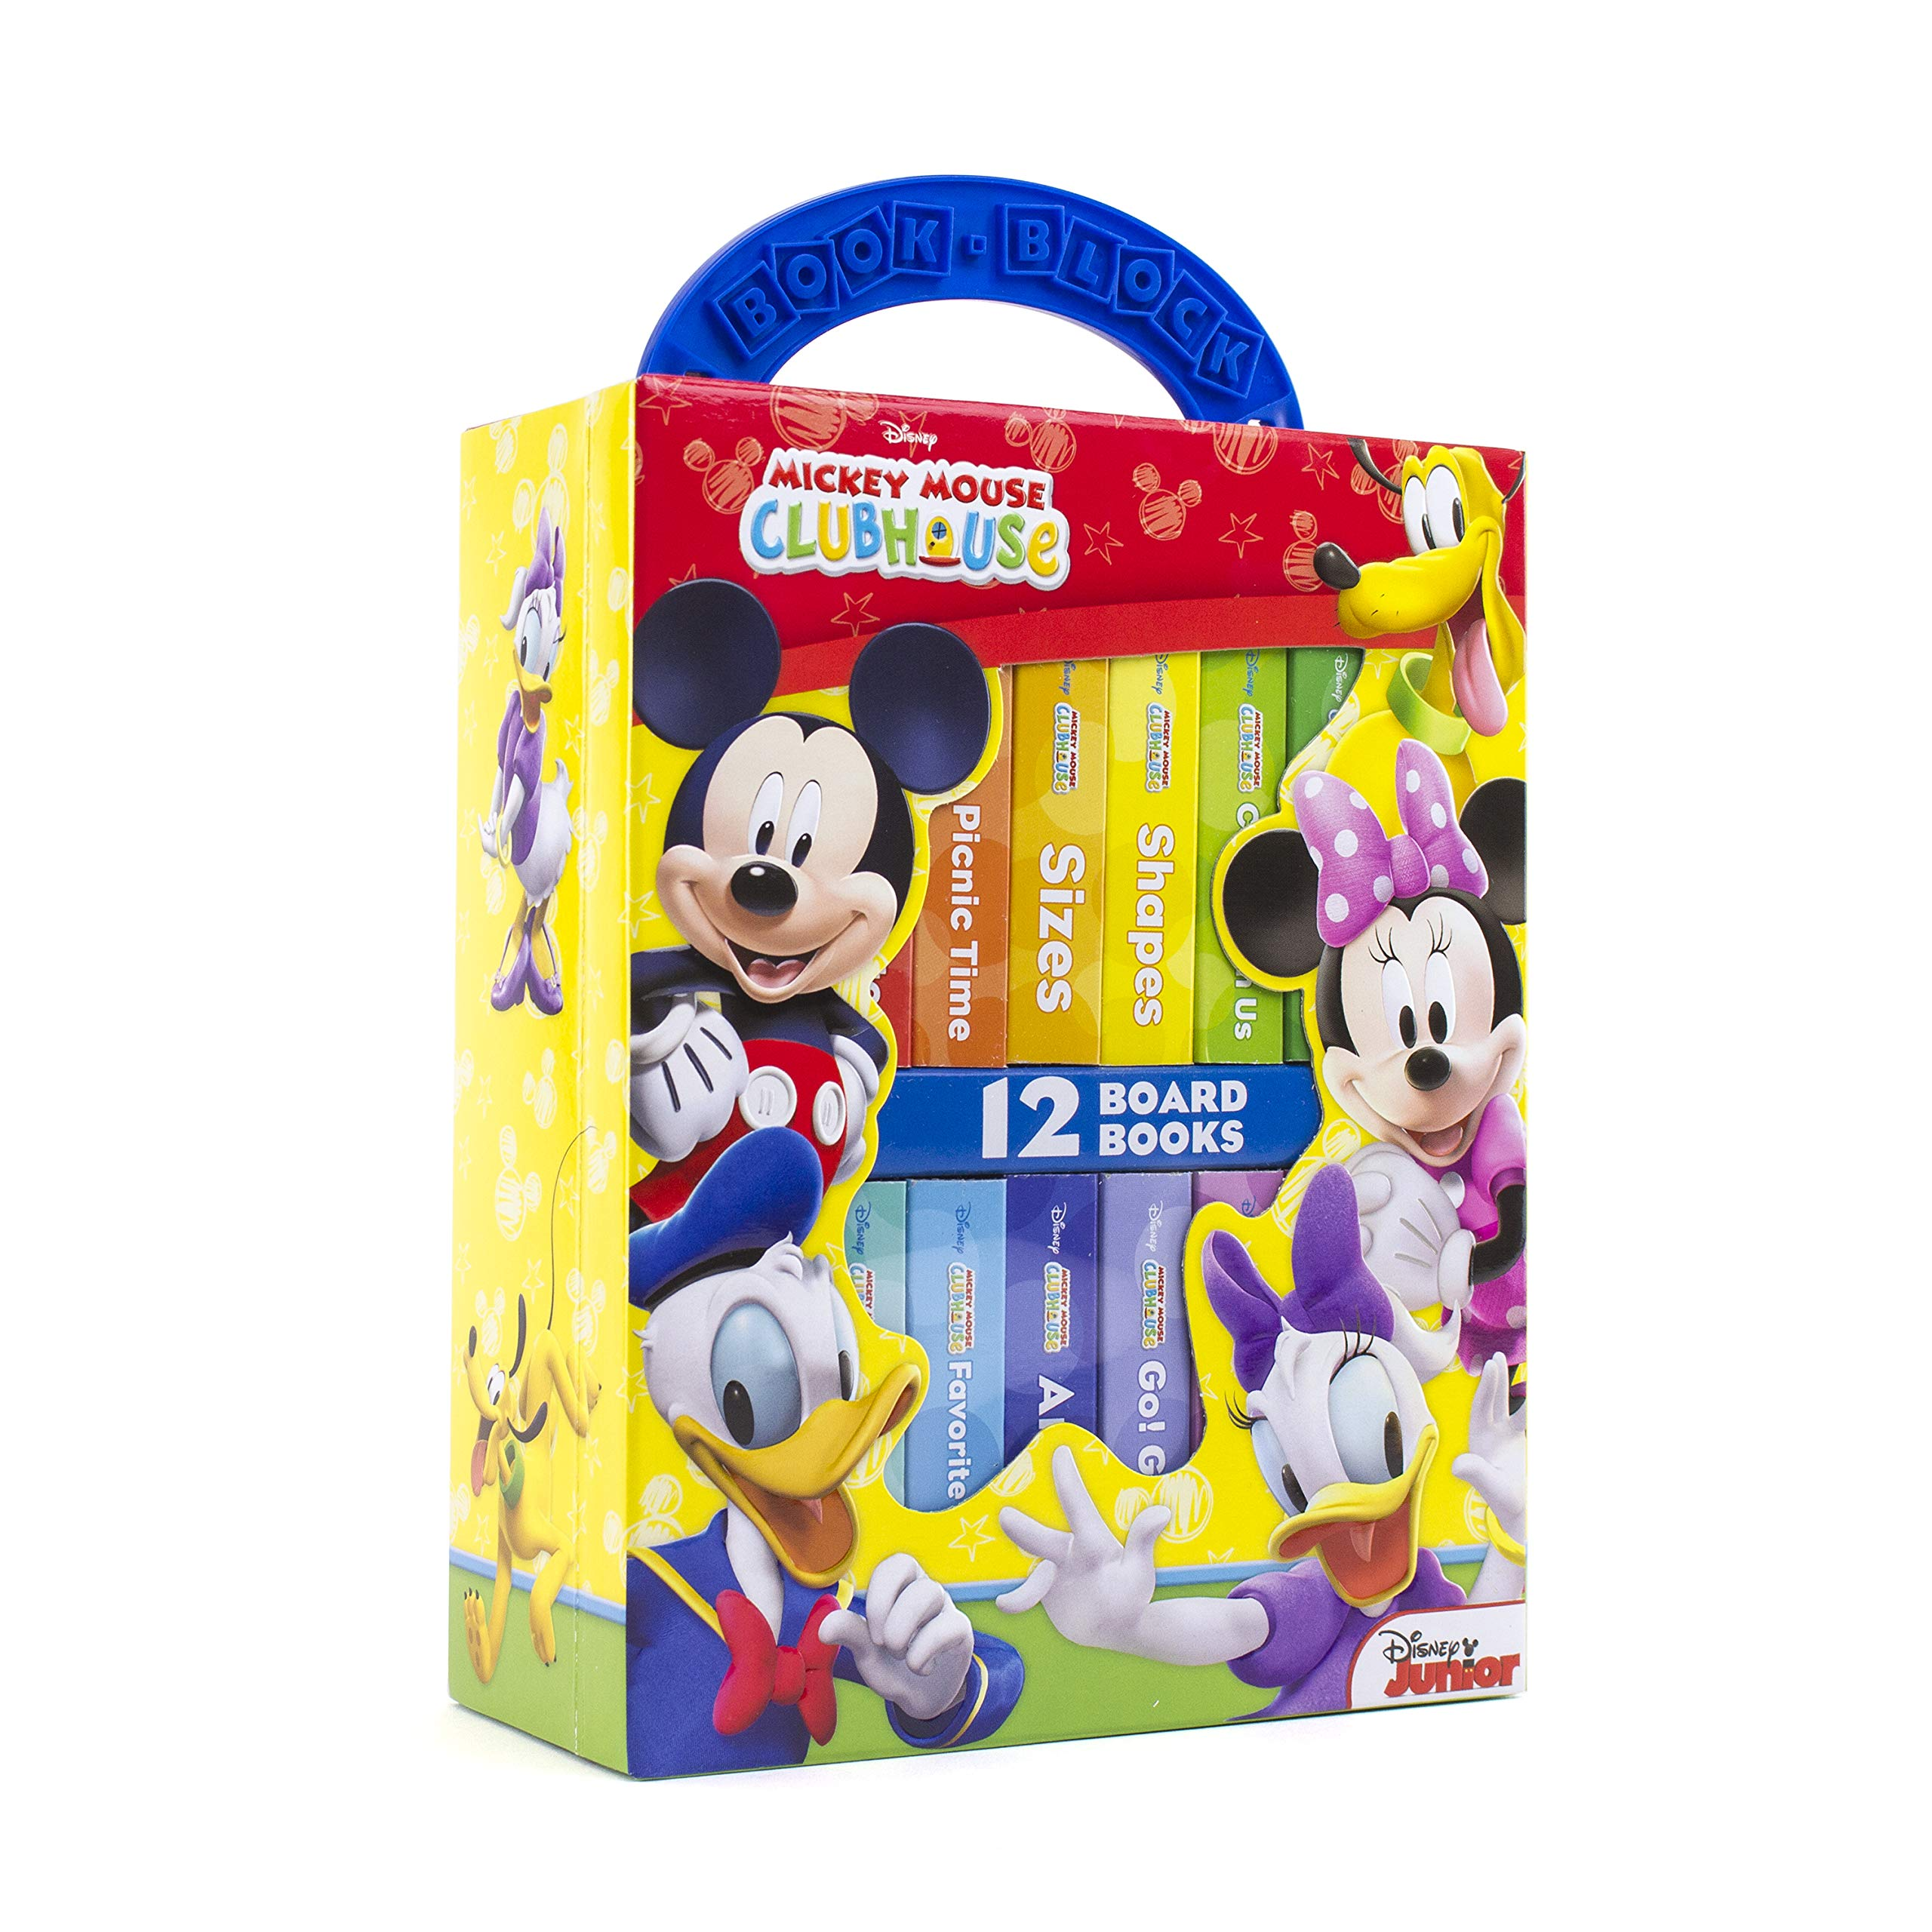 5248b2d89d Disney Mickey Mouse Clubhouse - My First Library Board Book Block 12-Book  Set - PI Kids  Editors of Phoenix International Publications   9781412768511  ...